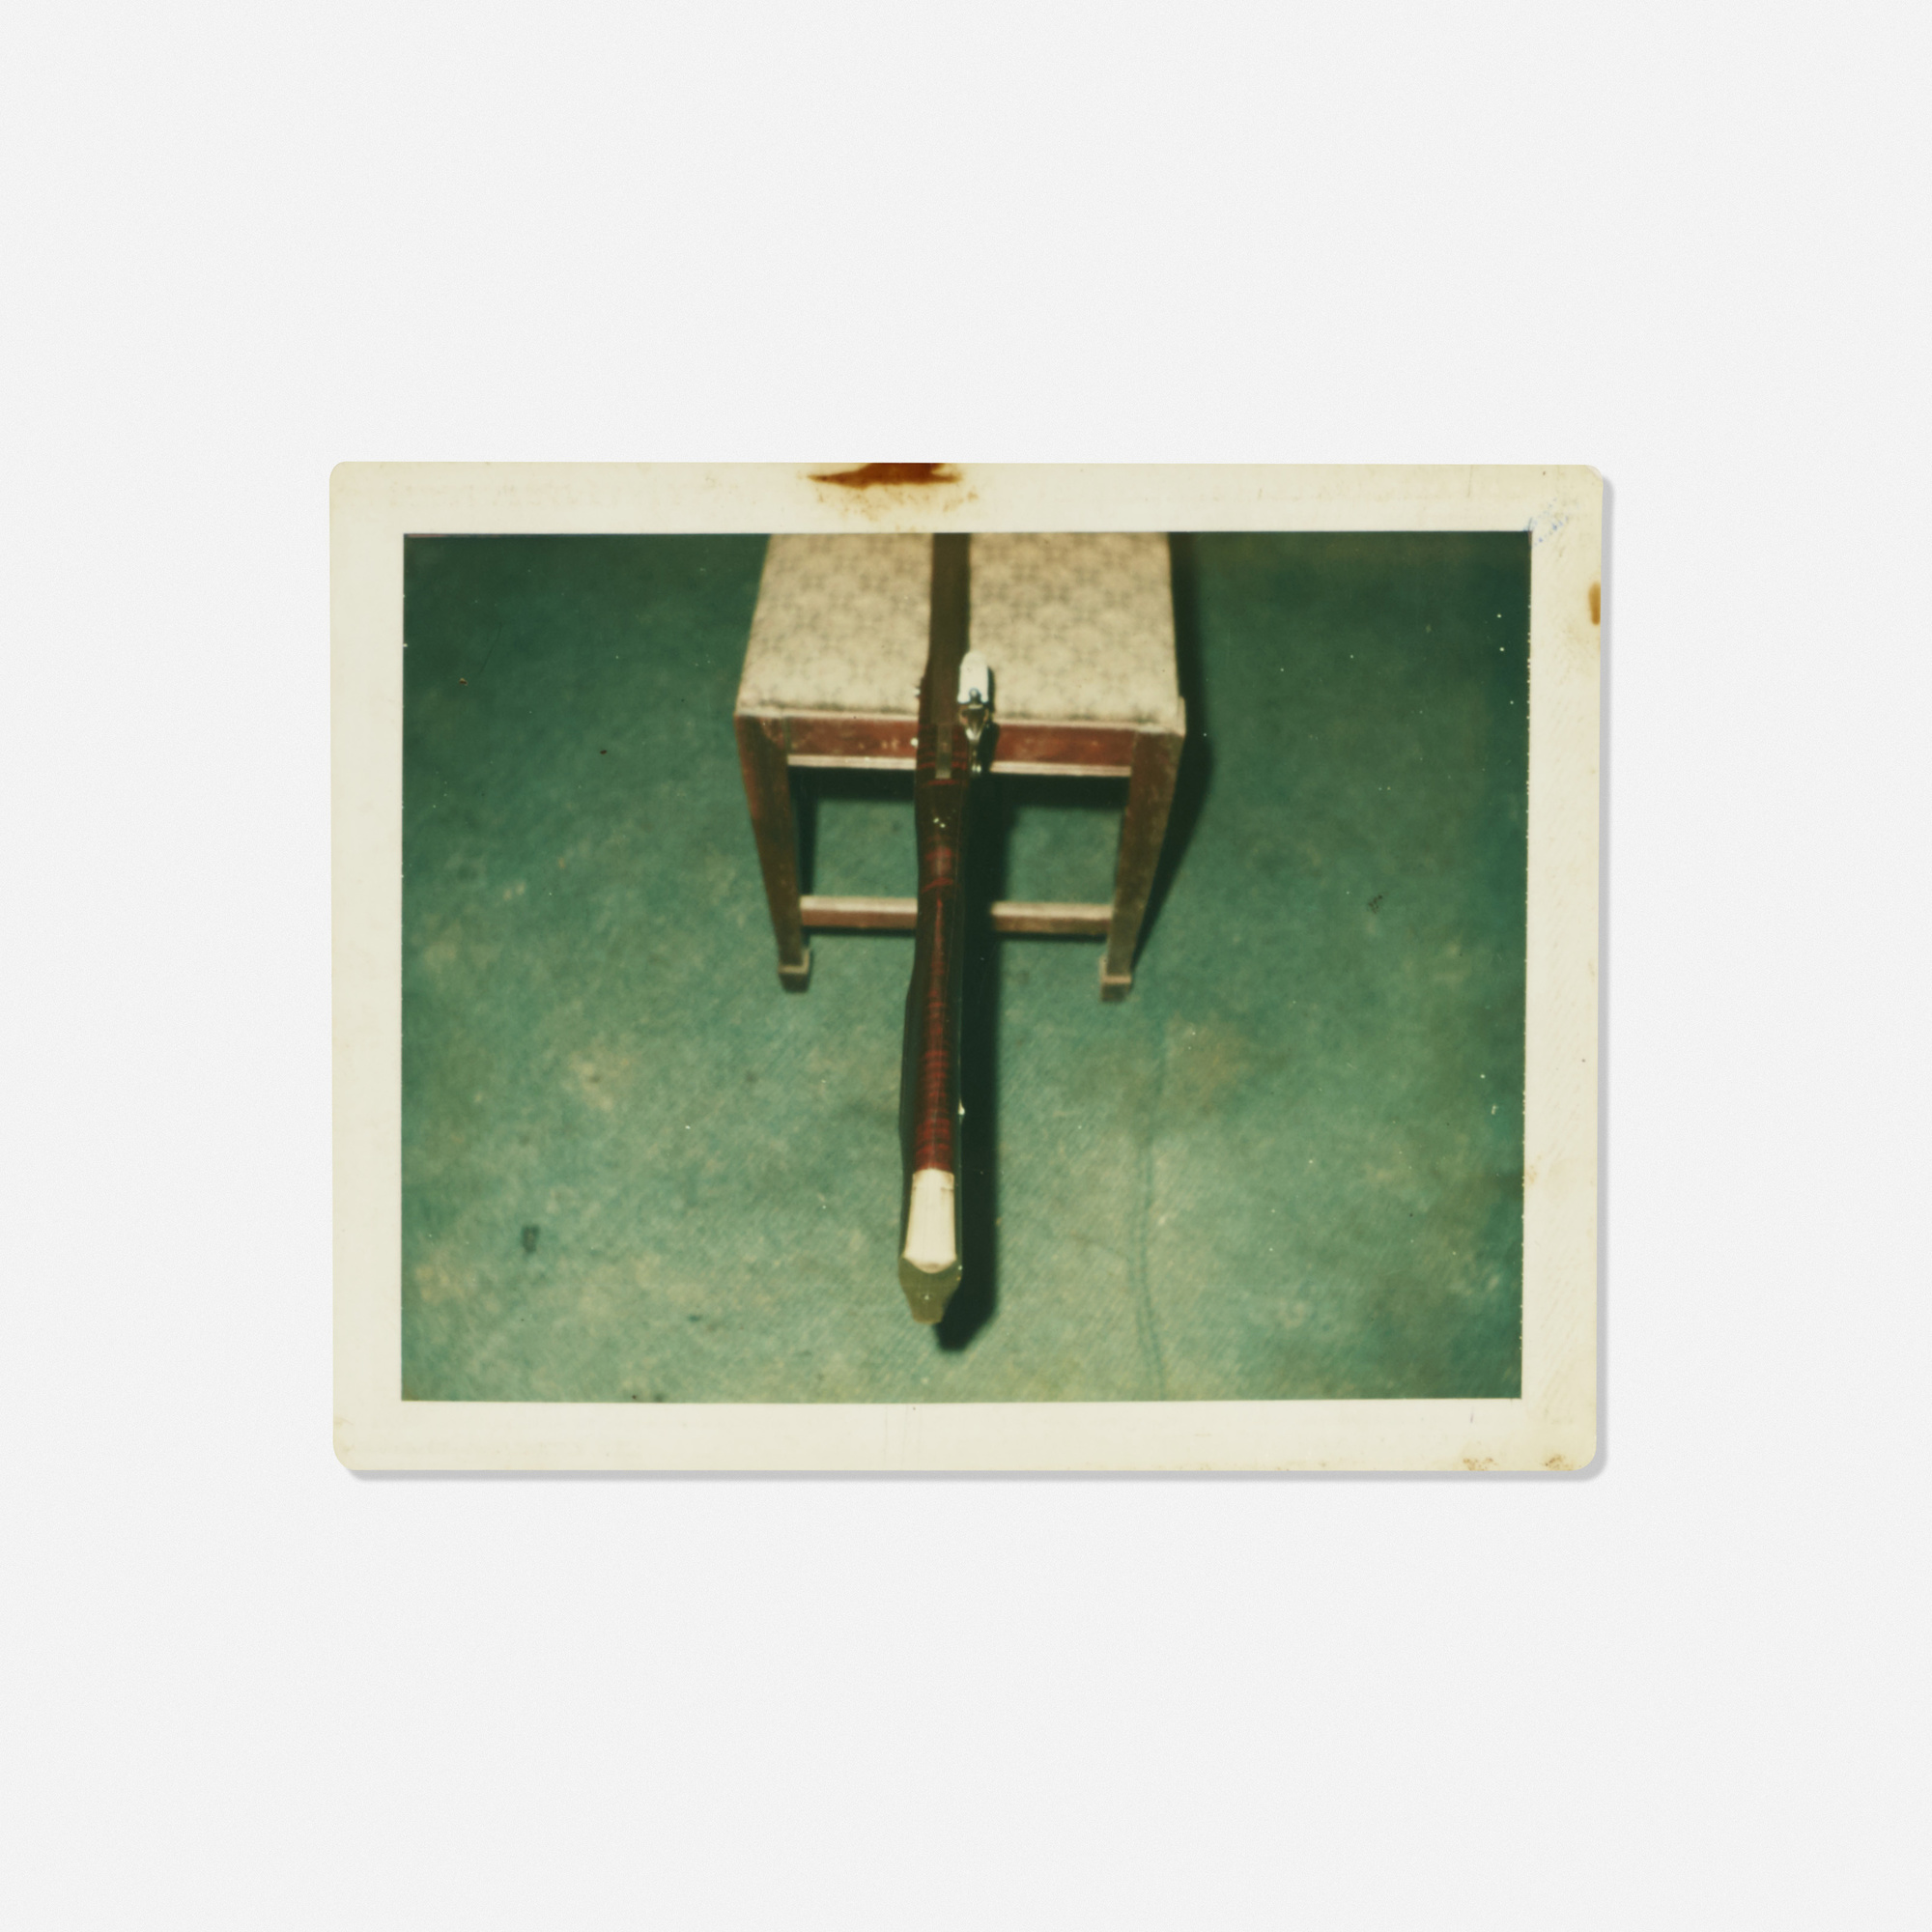 212: Andy Warhol / Untitled (Rifle on a Chair) (1 of 1)